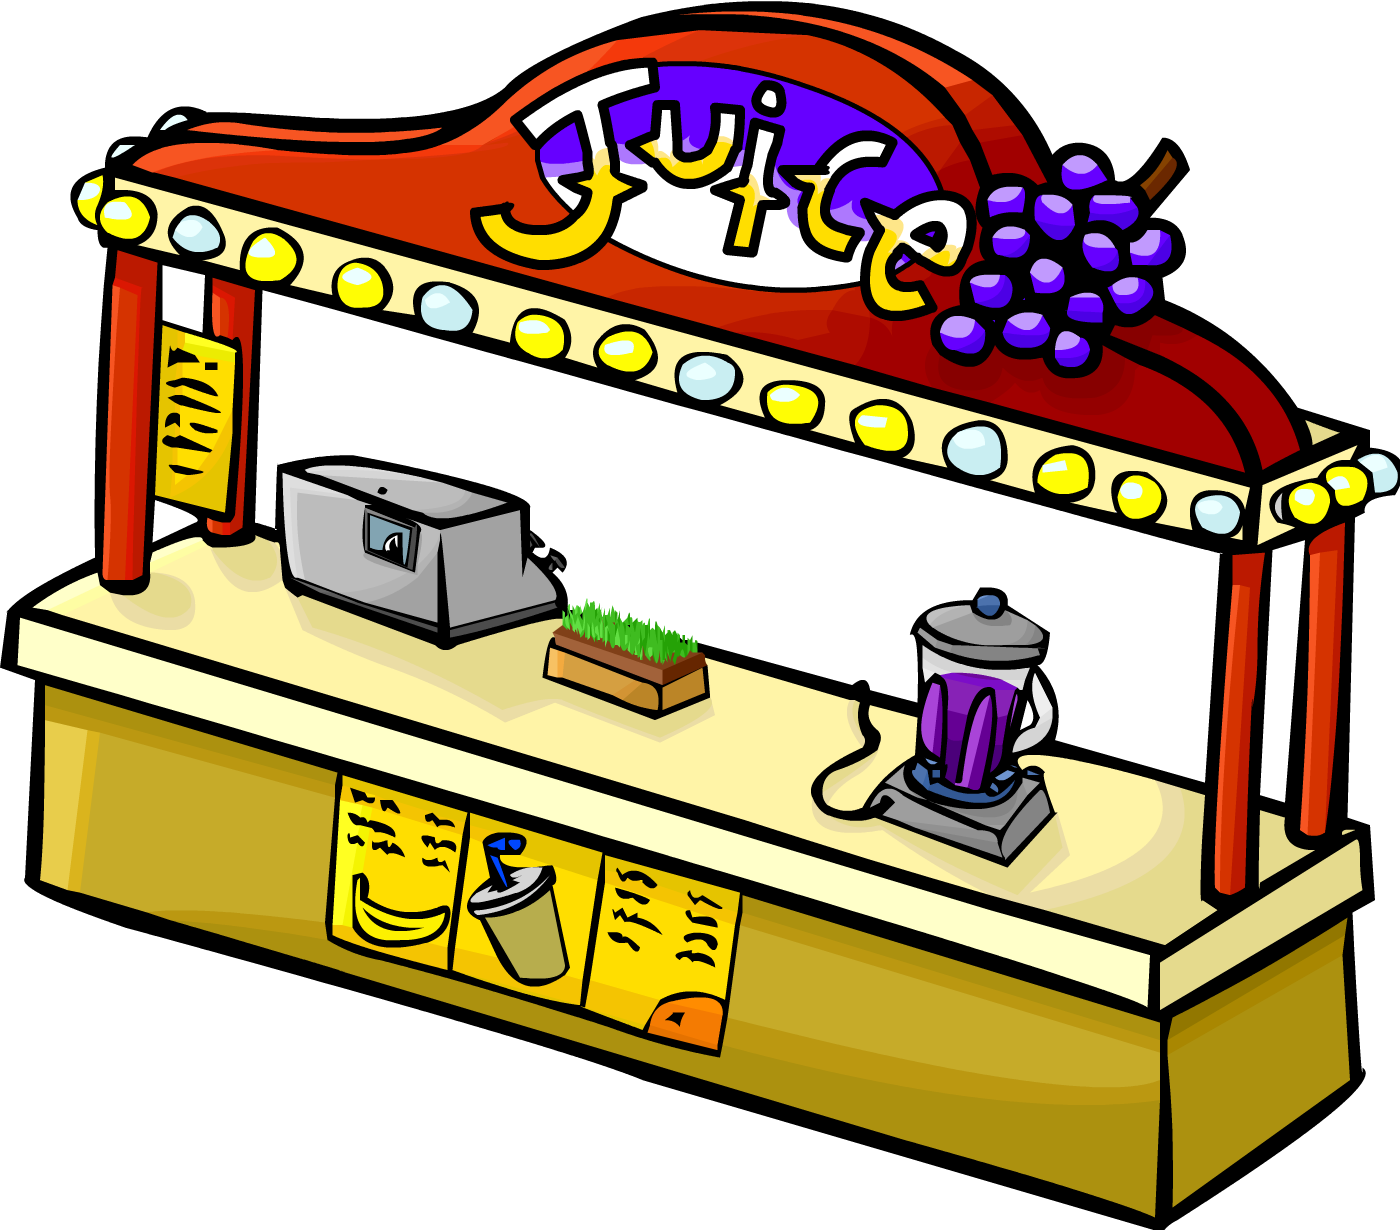 File:Juice stand.png